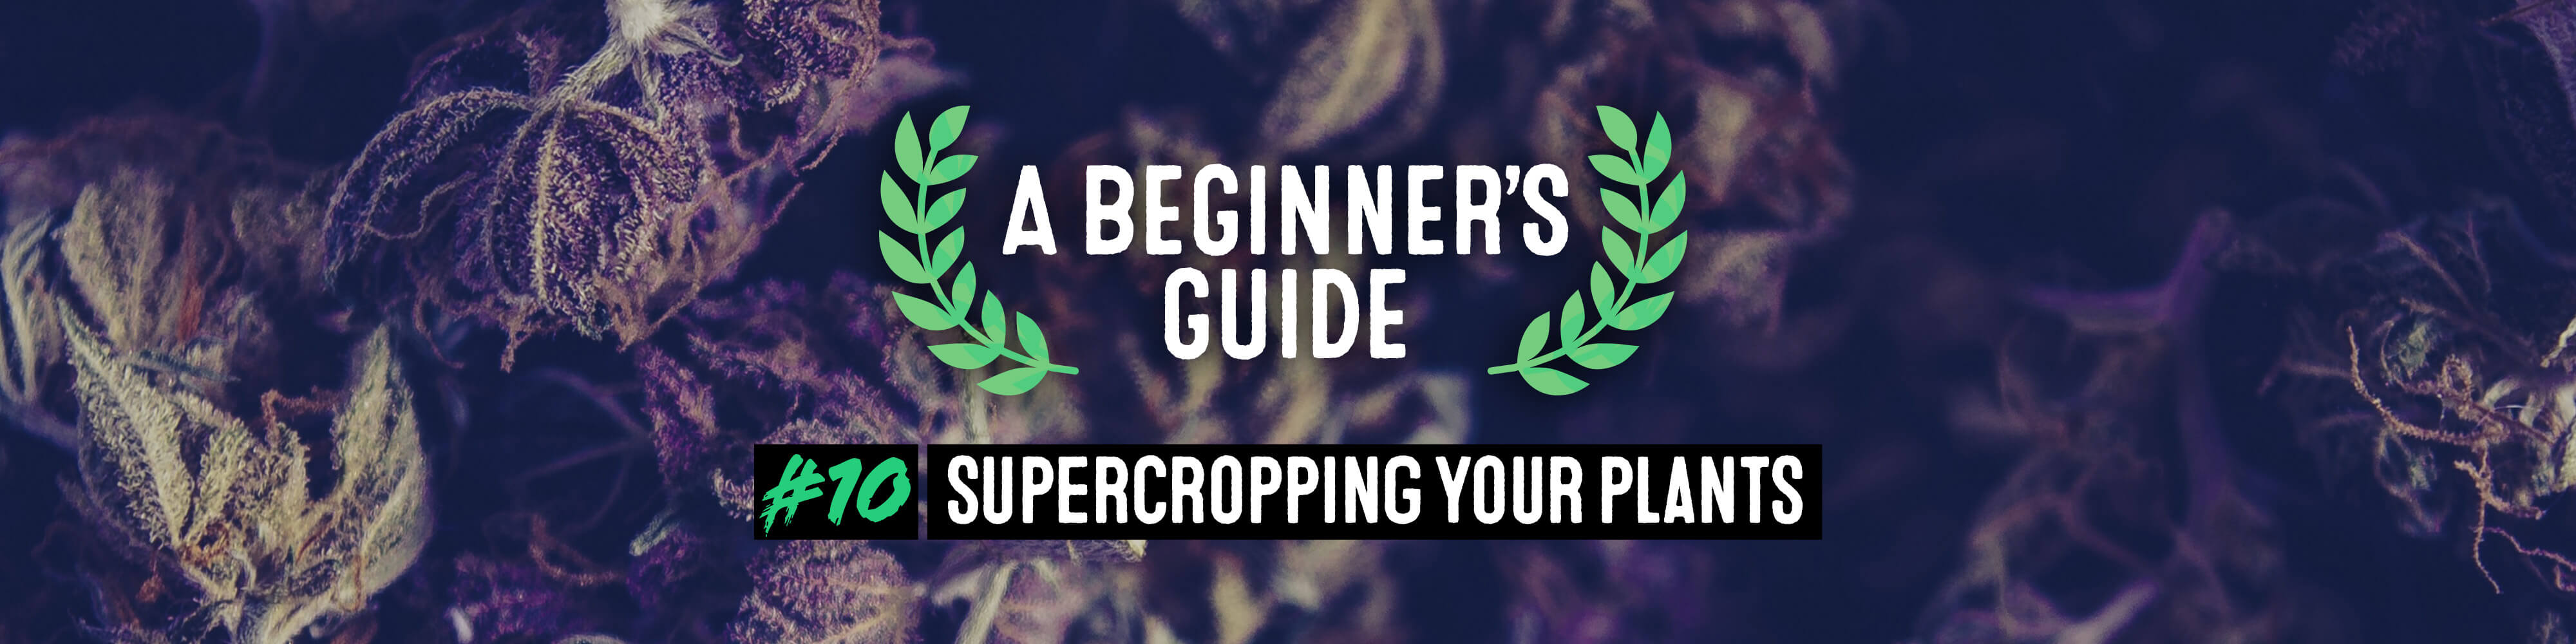 supercropping your plants